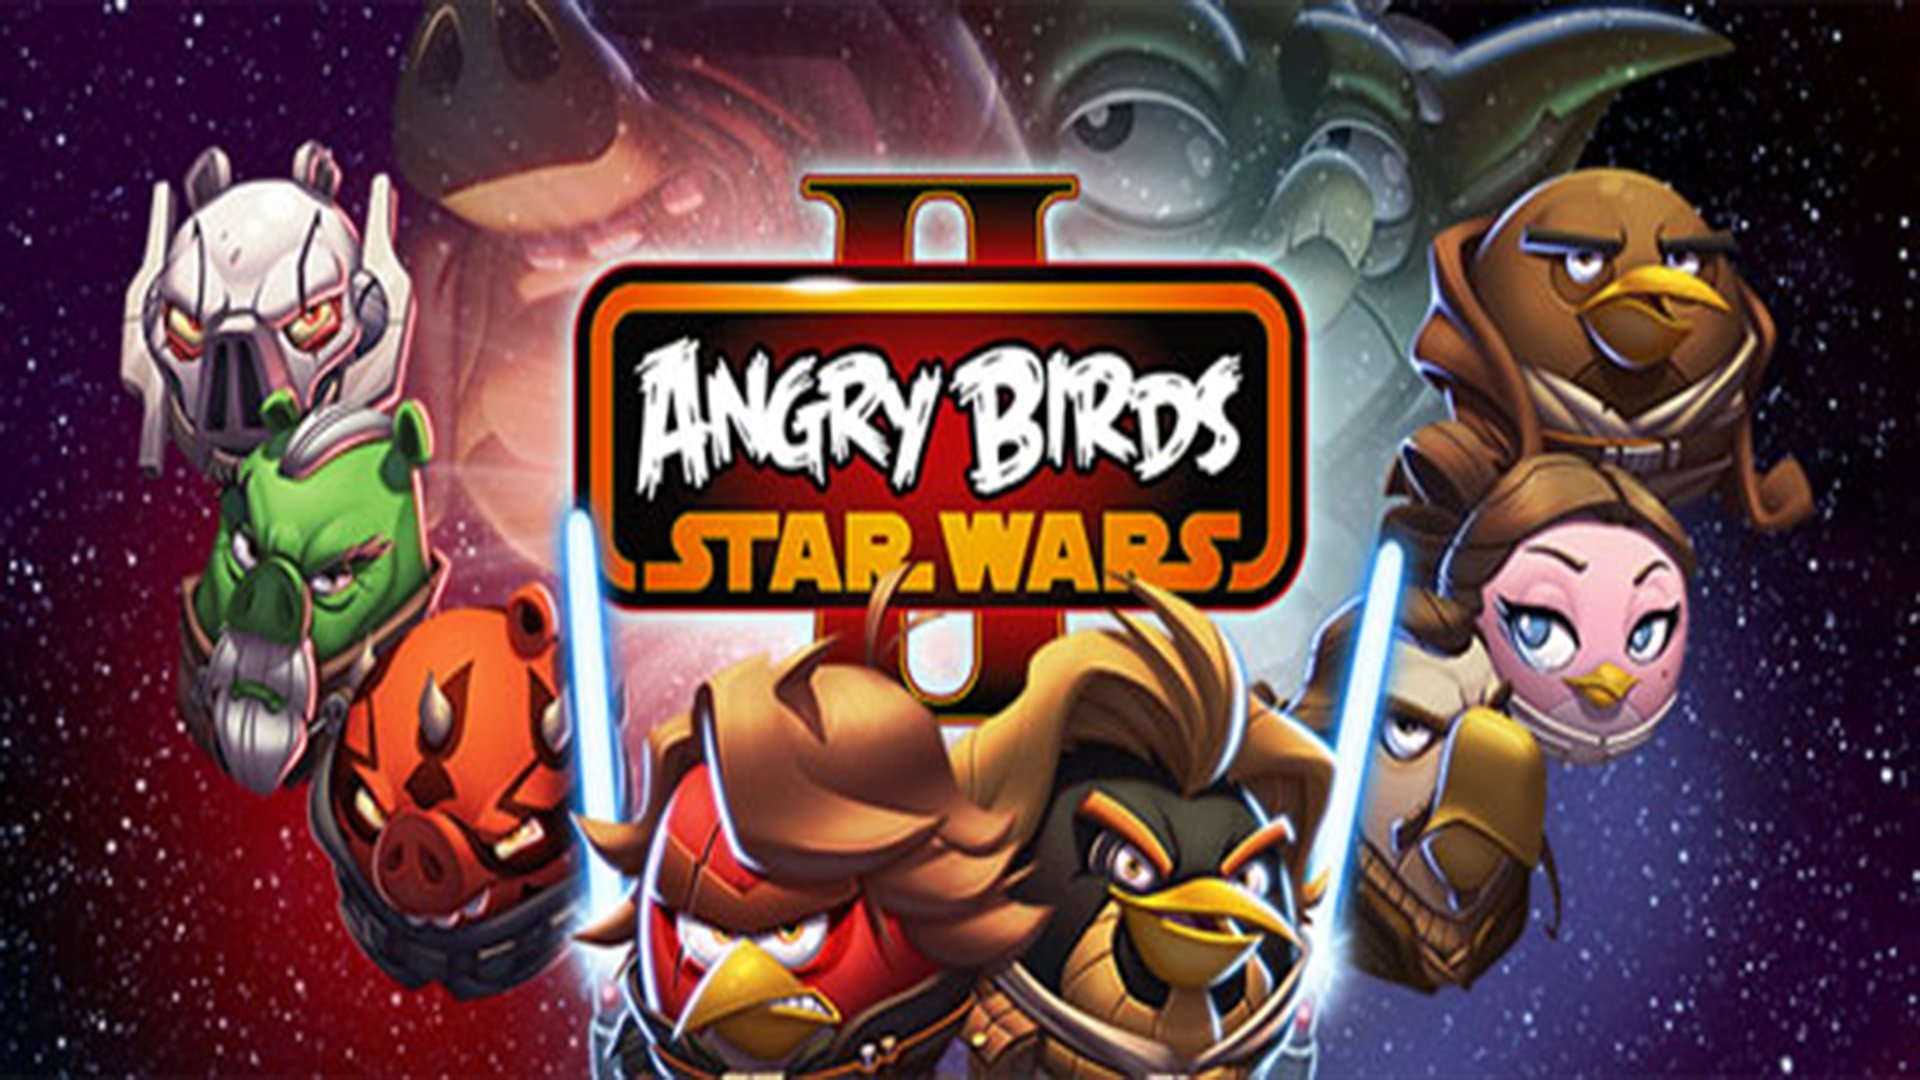 Angry Birds Star Wars 2 Hd Wallpaper Background Image 1920x1080 Id 530930 Wallpaper Abyss